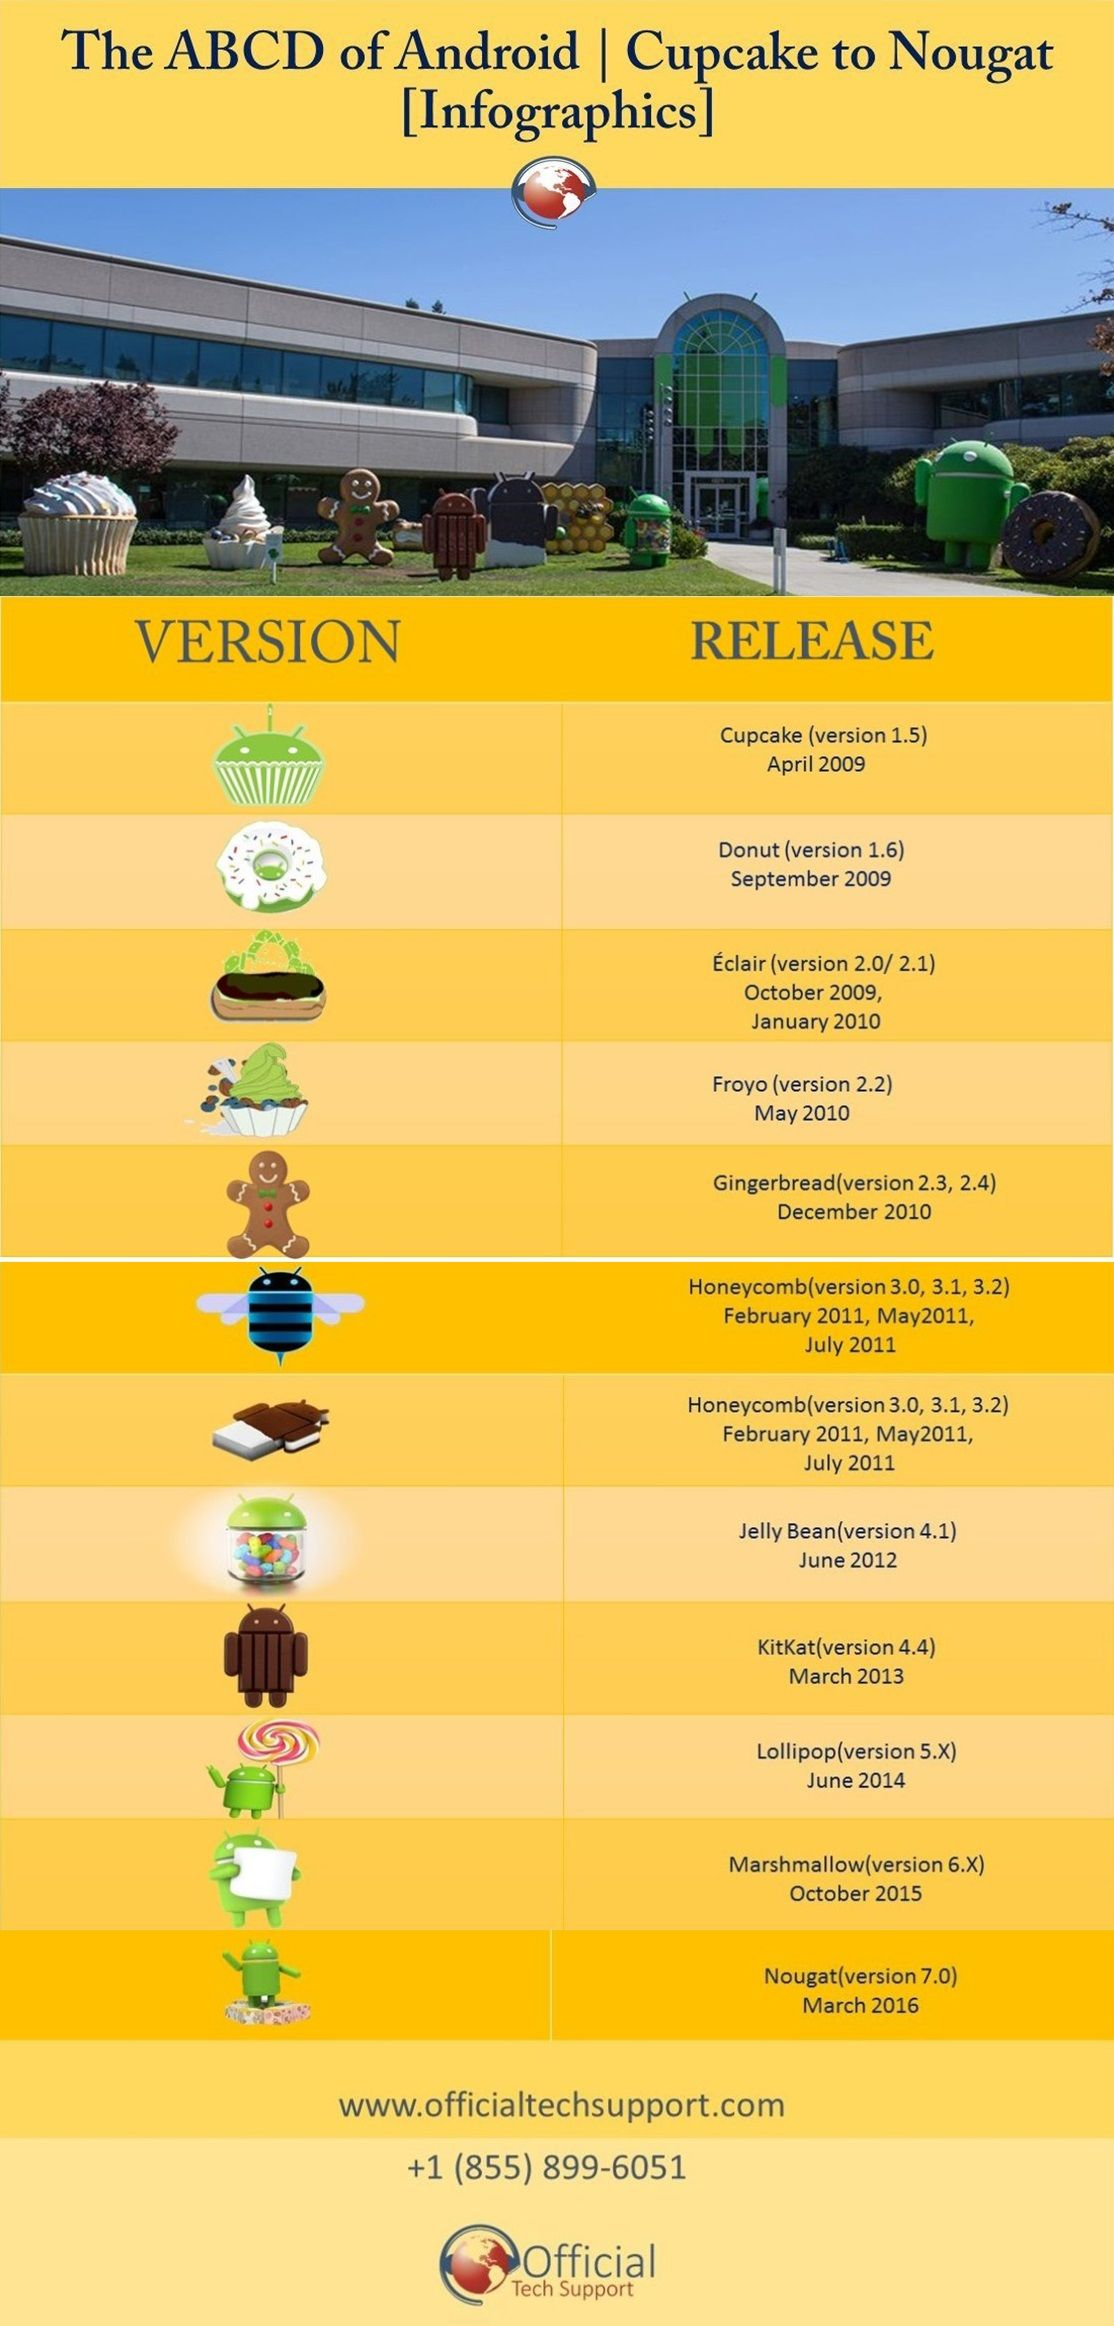 Here is The ABCD of Android | Cupcake to Nougat |